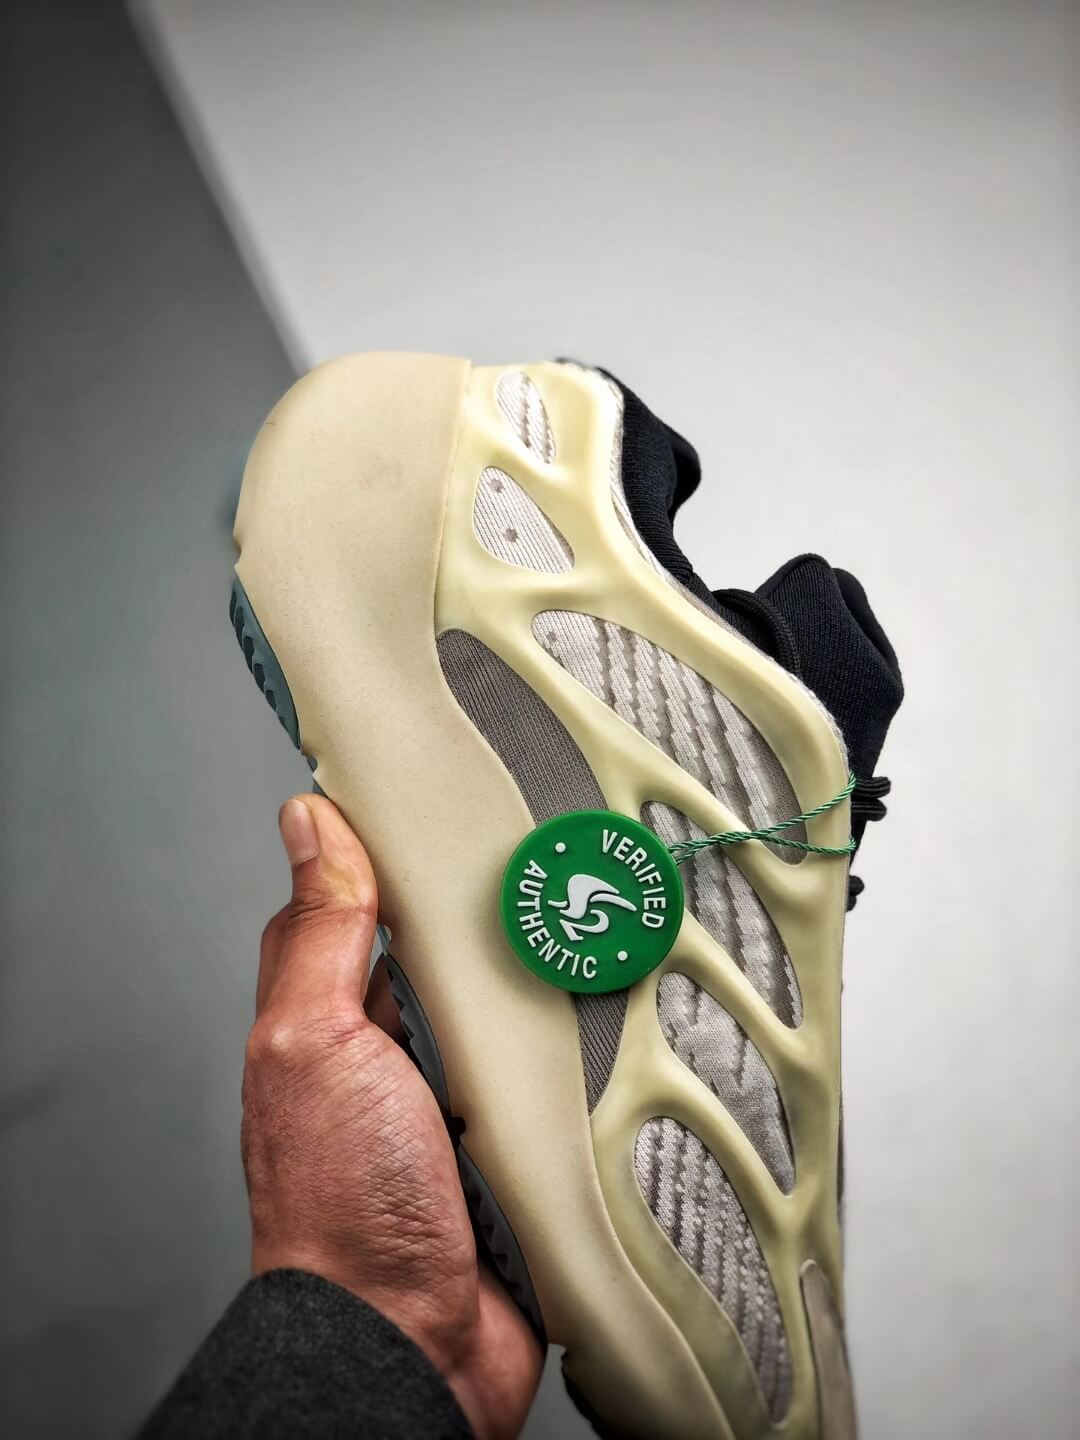 The Adidas Yeezy 700 V3 Azael Reflective Sneaker White Mesh Open Work Upper EVA Outer Sole Top RepSneakers 05